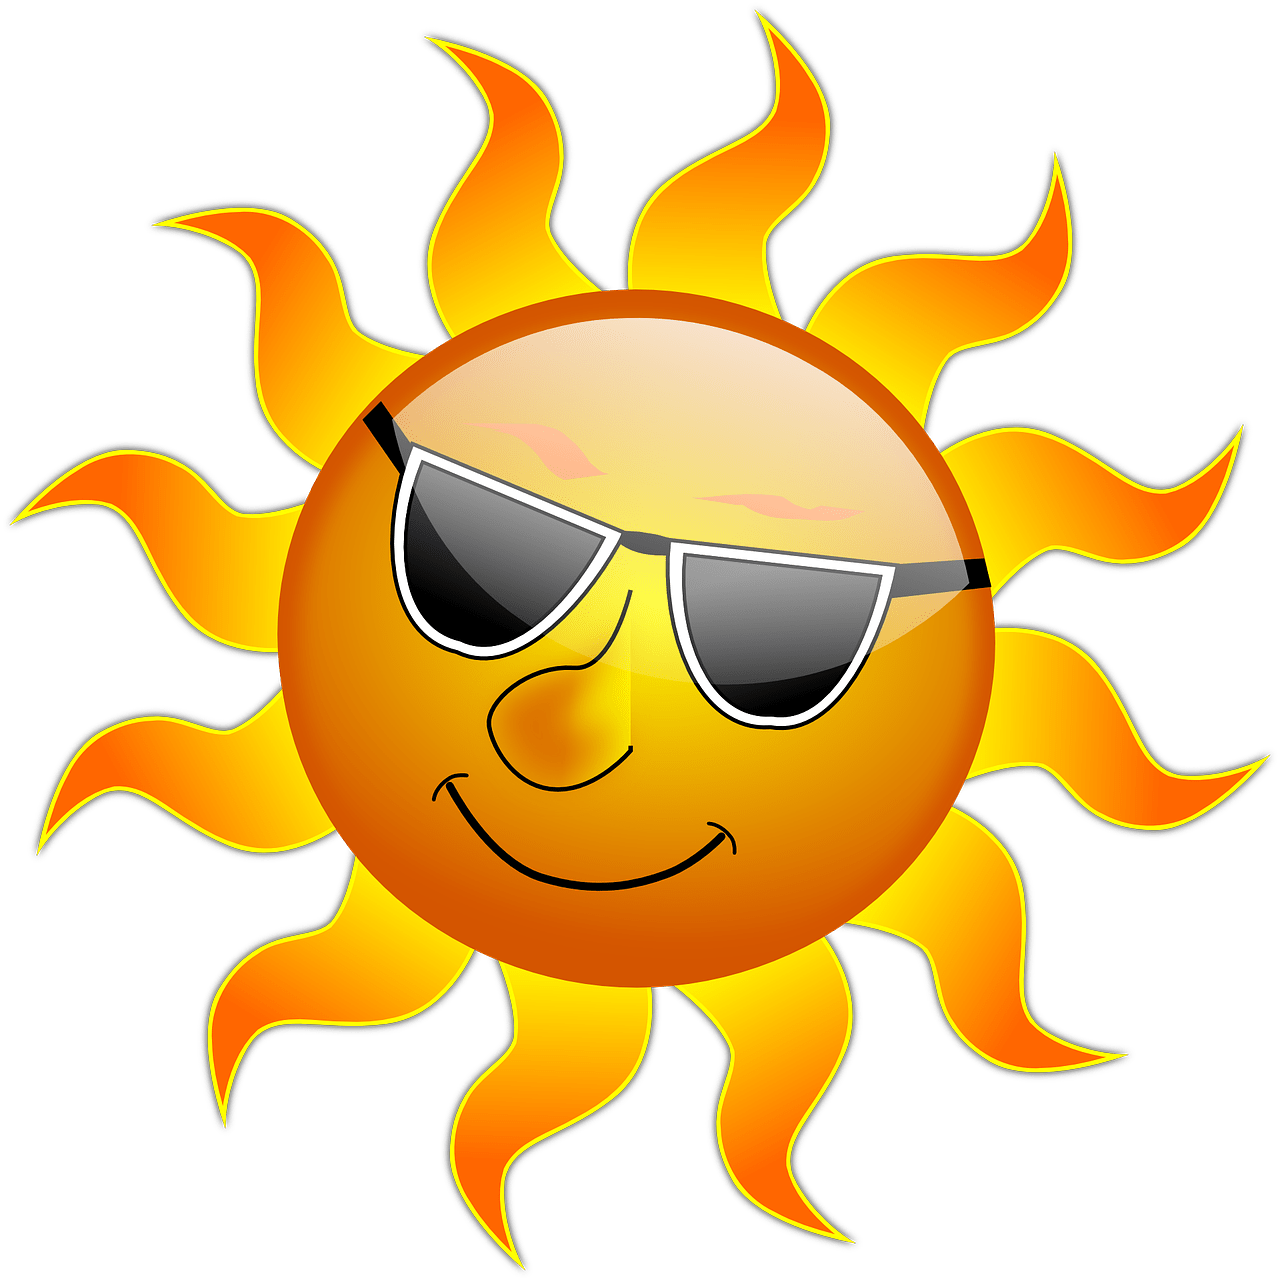 Evaporation clipart sun. Tips to stay cool